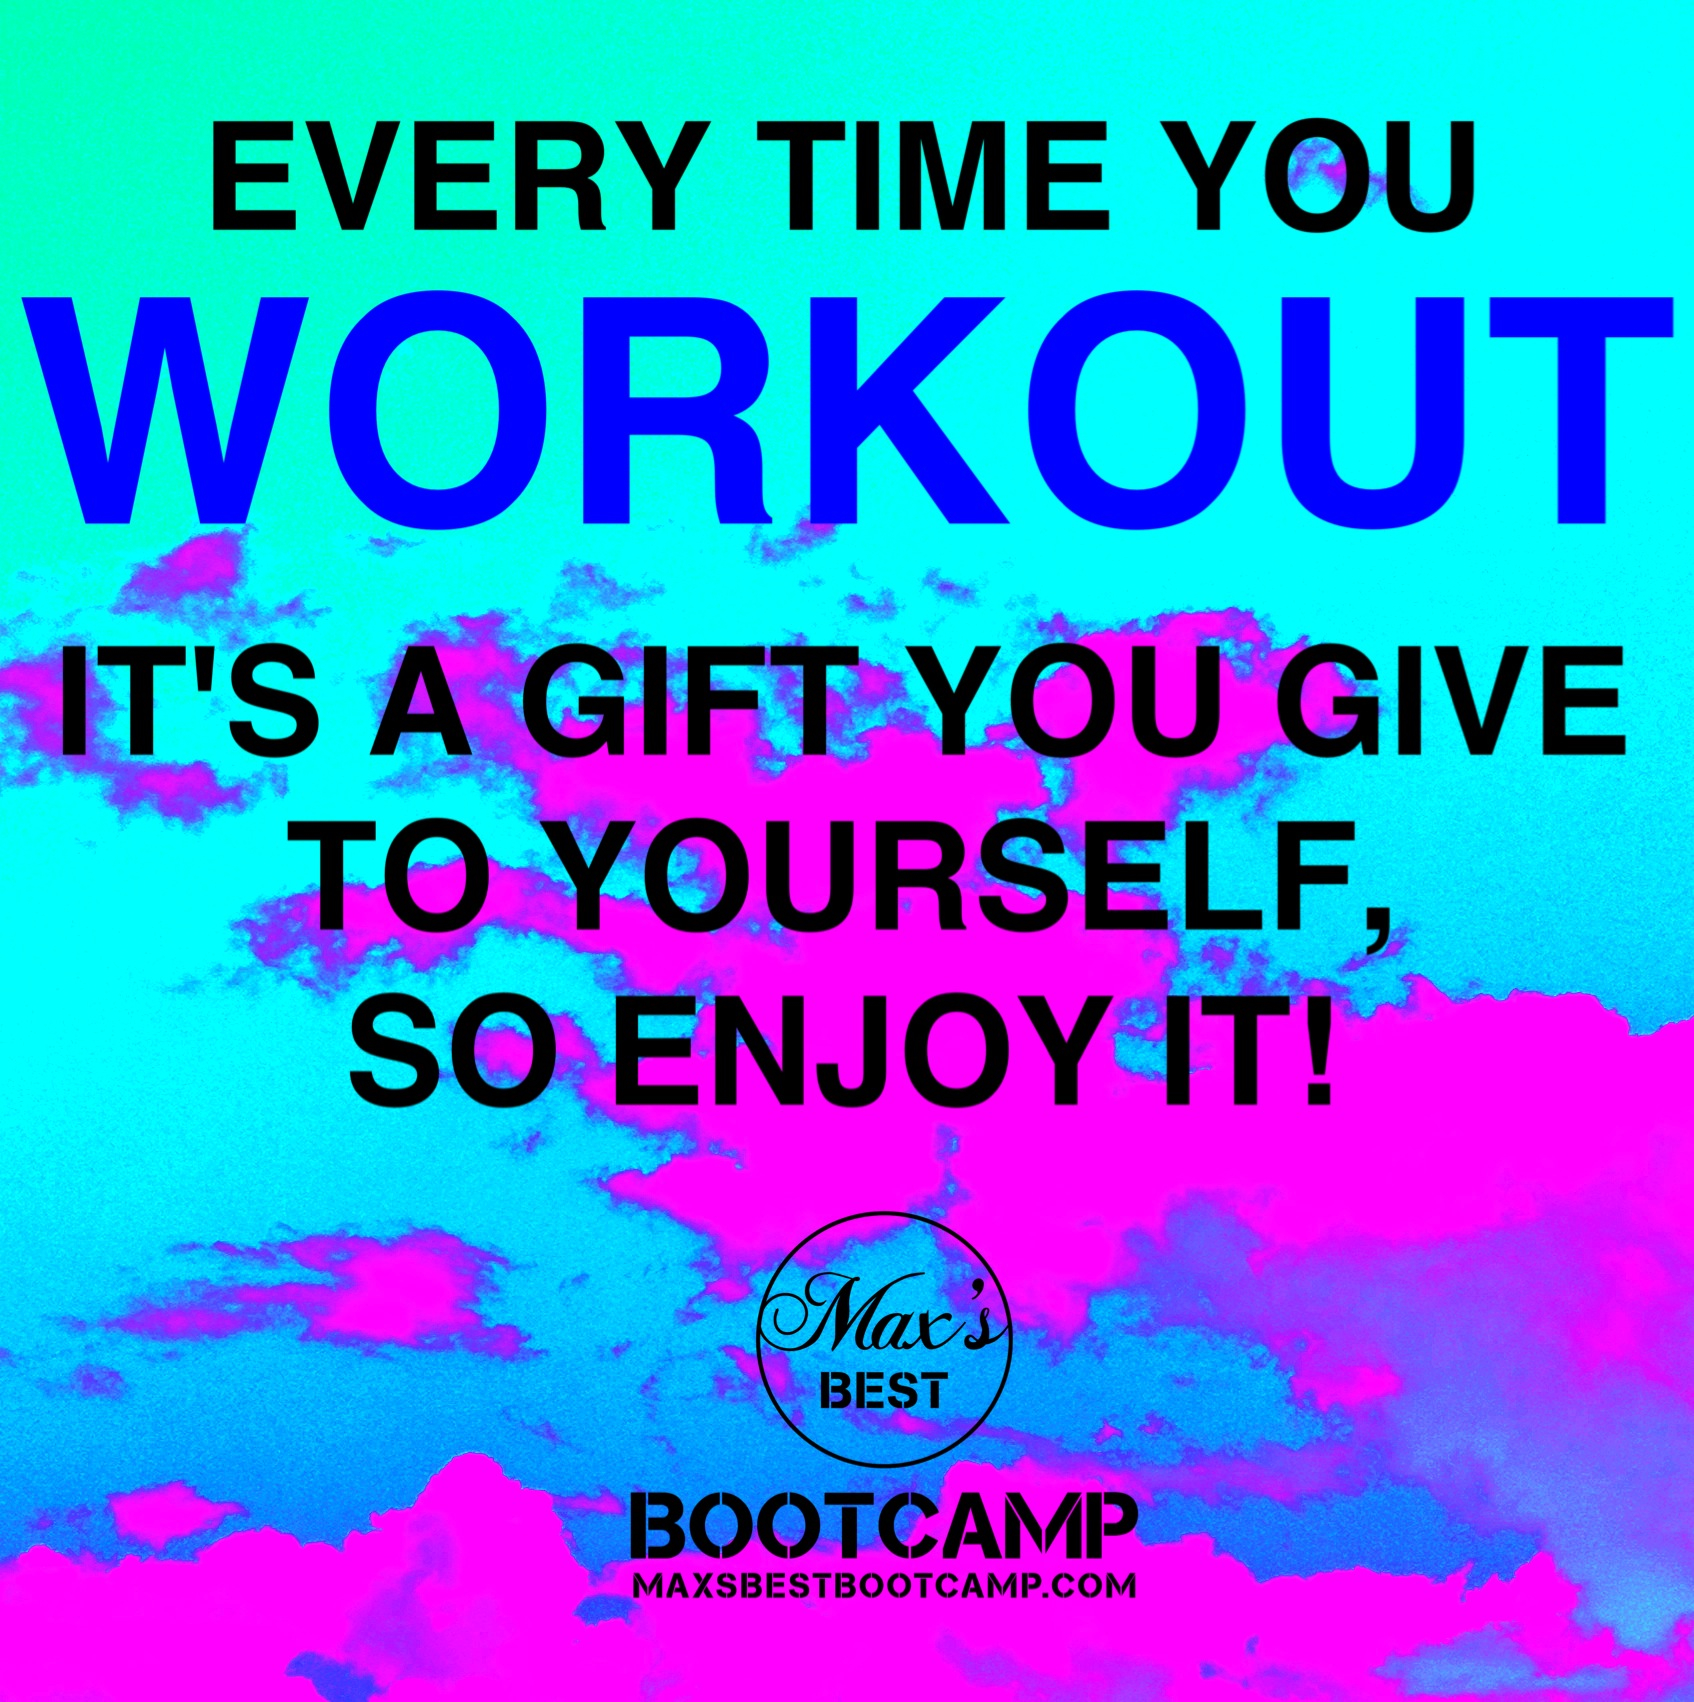 Funny Boot Camp Quotes. QuotesGram